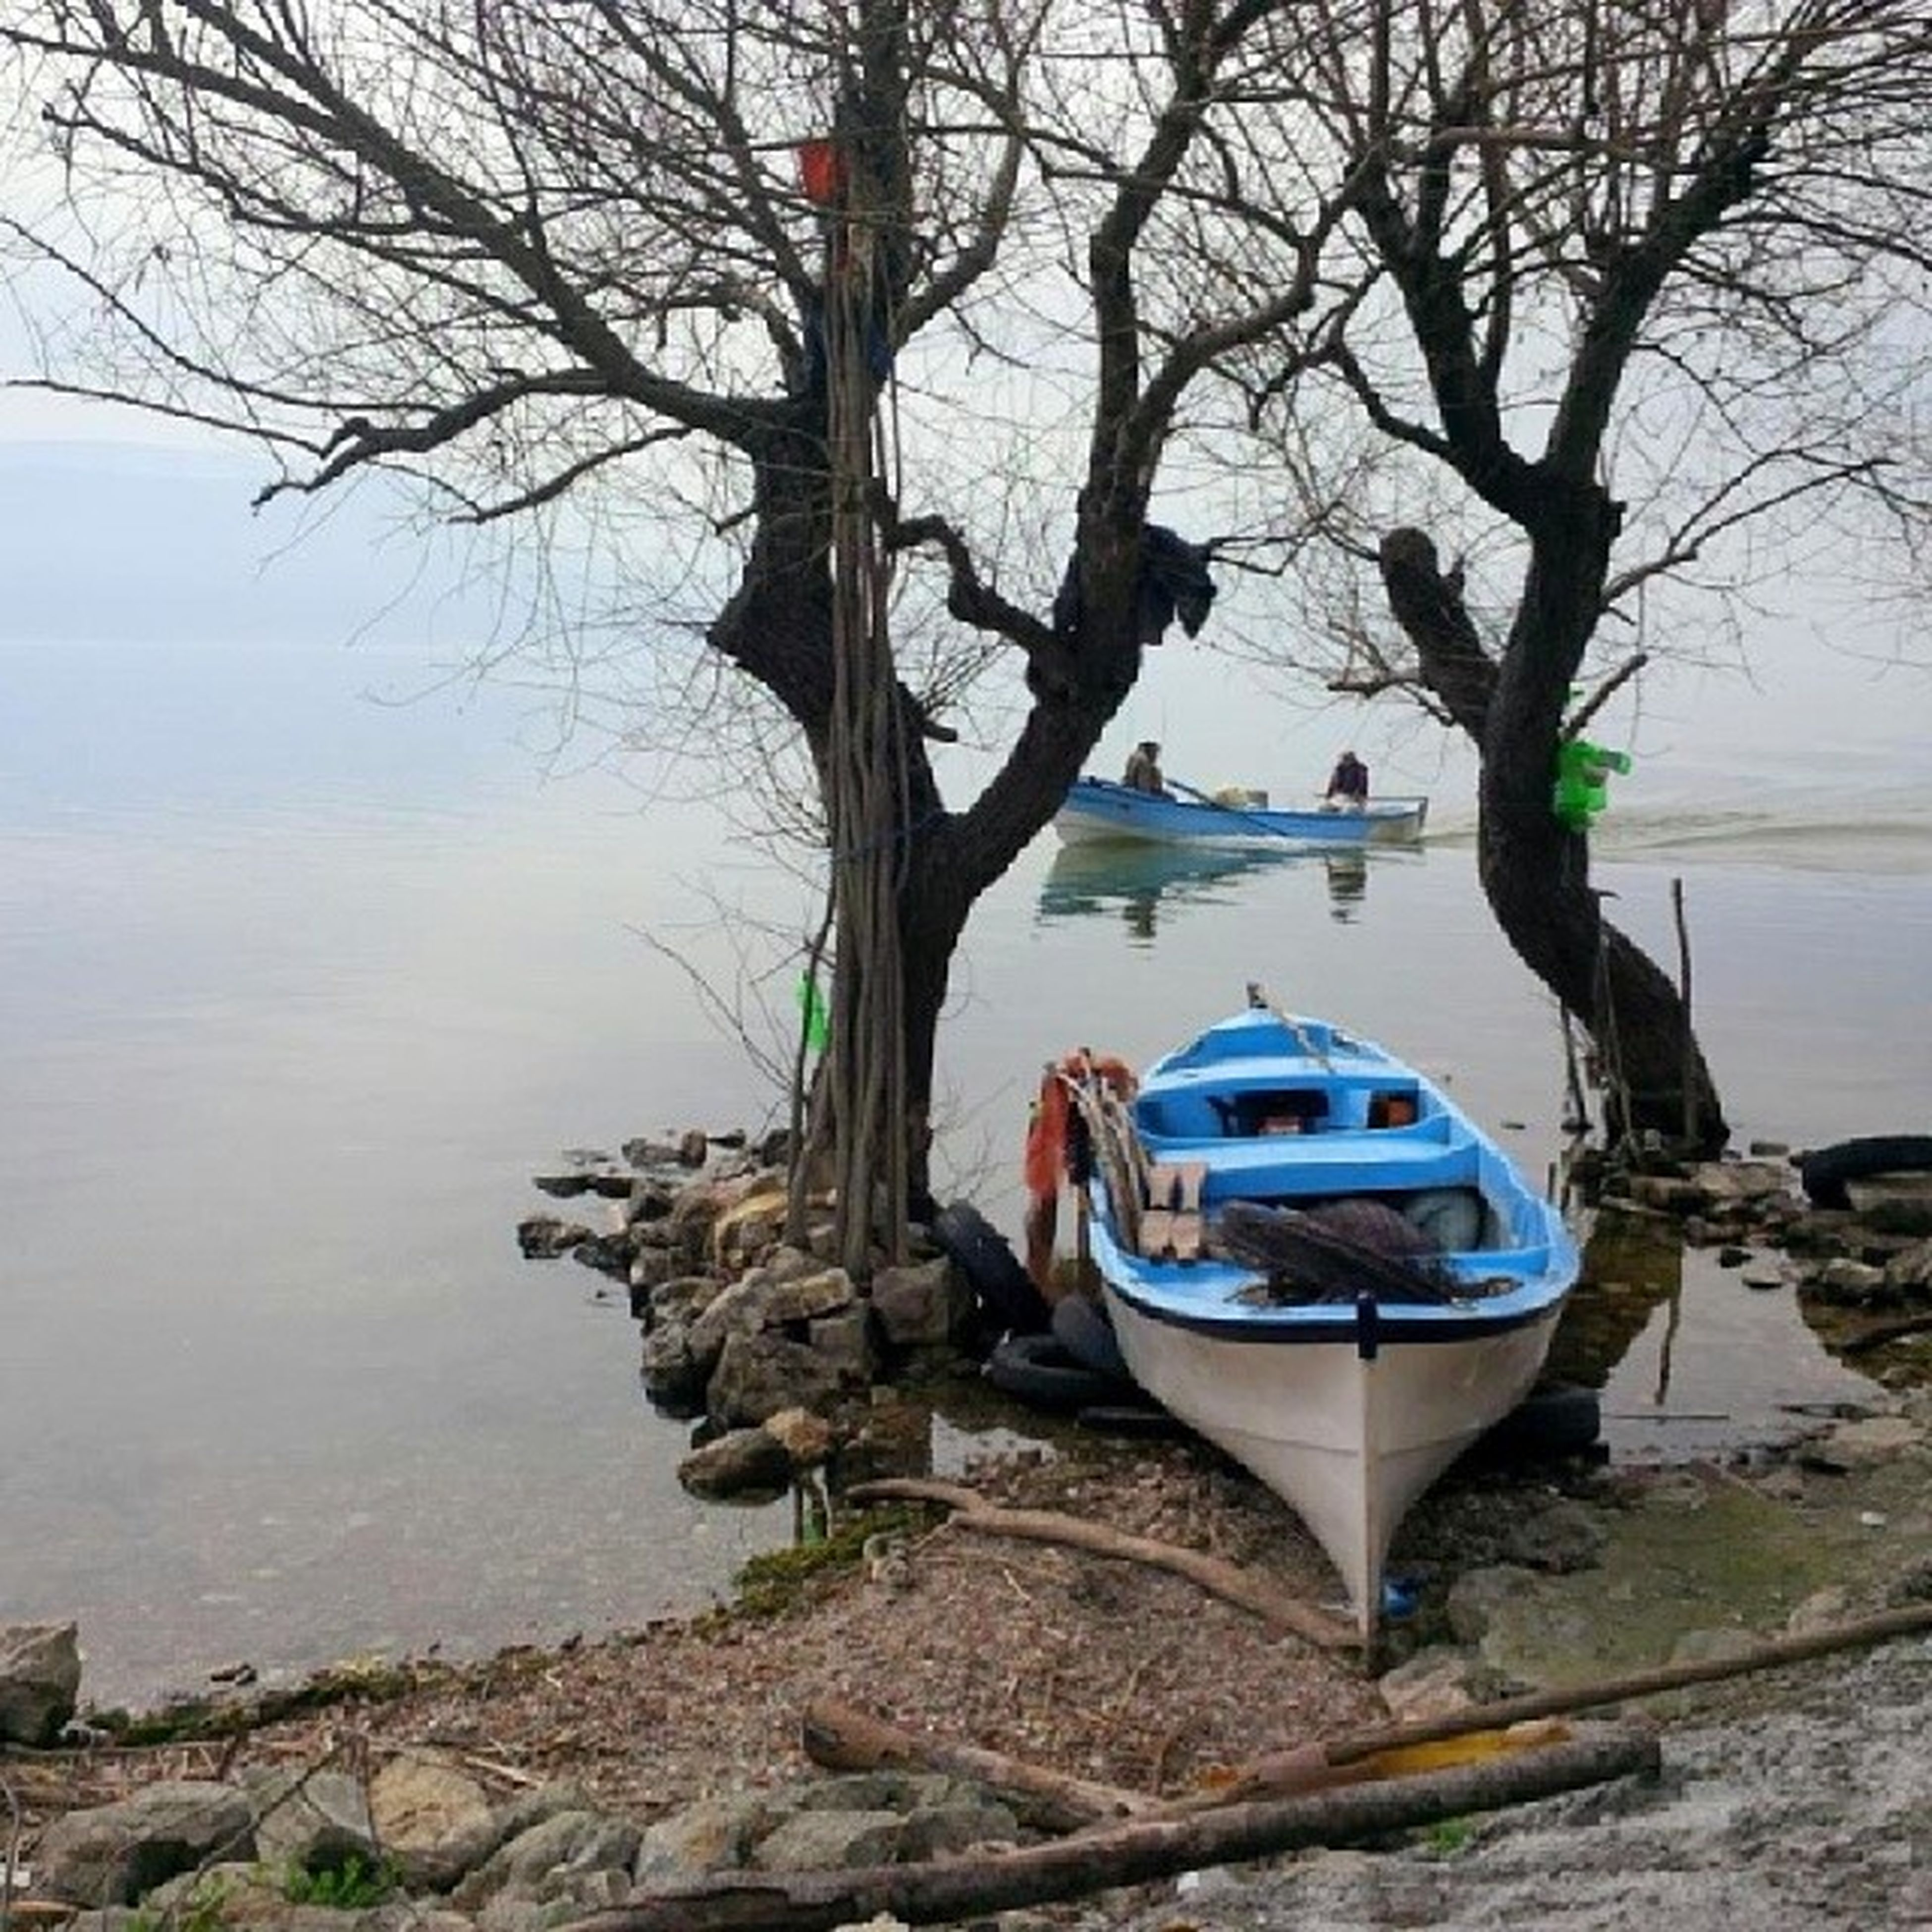 water, nautical vessel, boat, bare tree, transportation, tree, mode of transport, moored, sky, branch, lake, nature, day, tranquility, river, outdoors, tree trunk, riverbank, tranquil scene, reflection